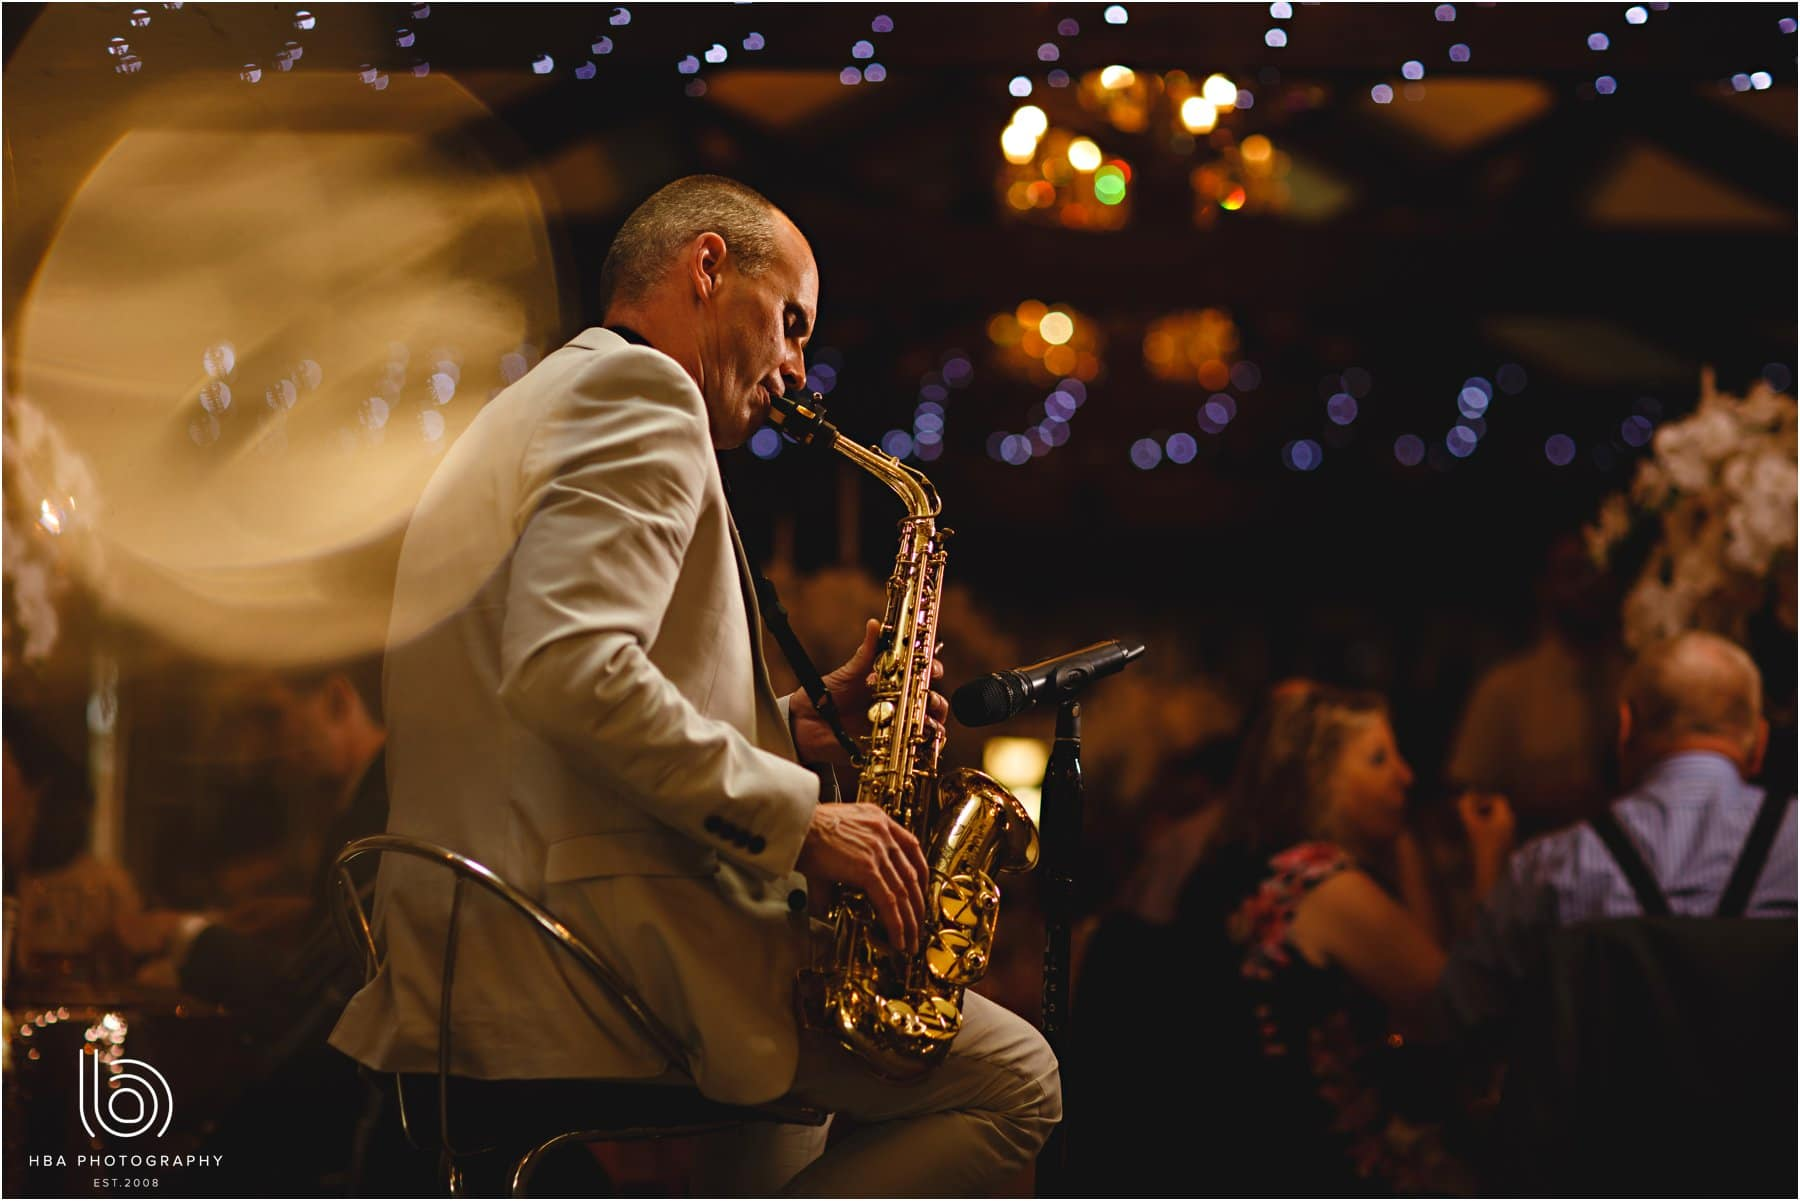 Paul Martyn playing the sax at the wedding